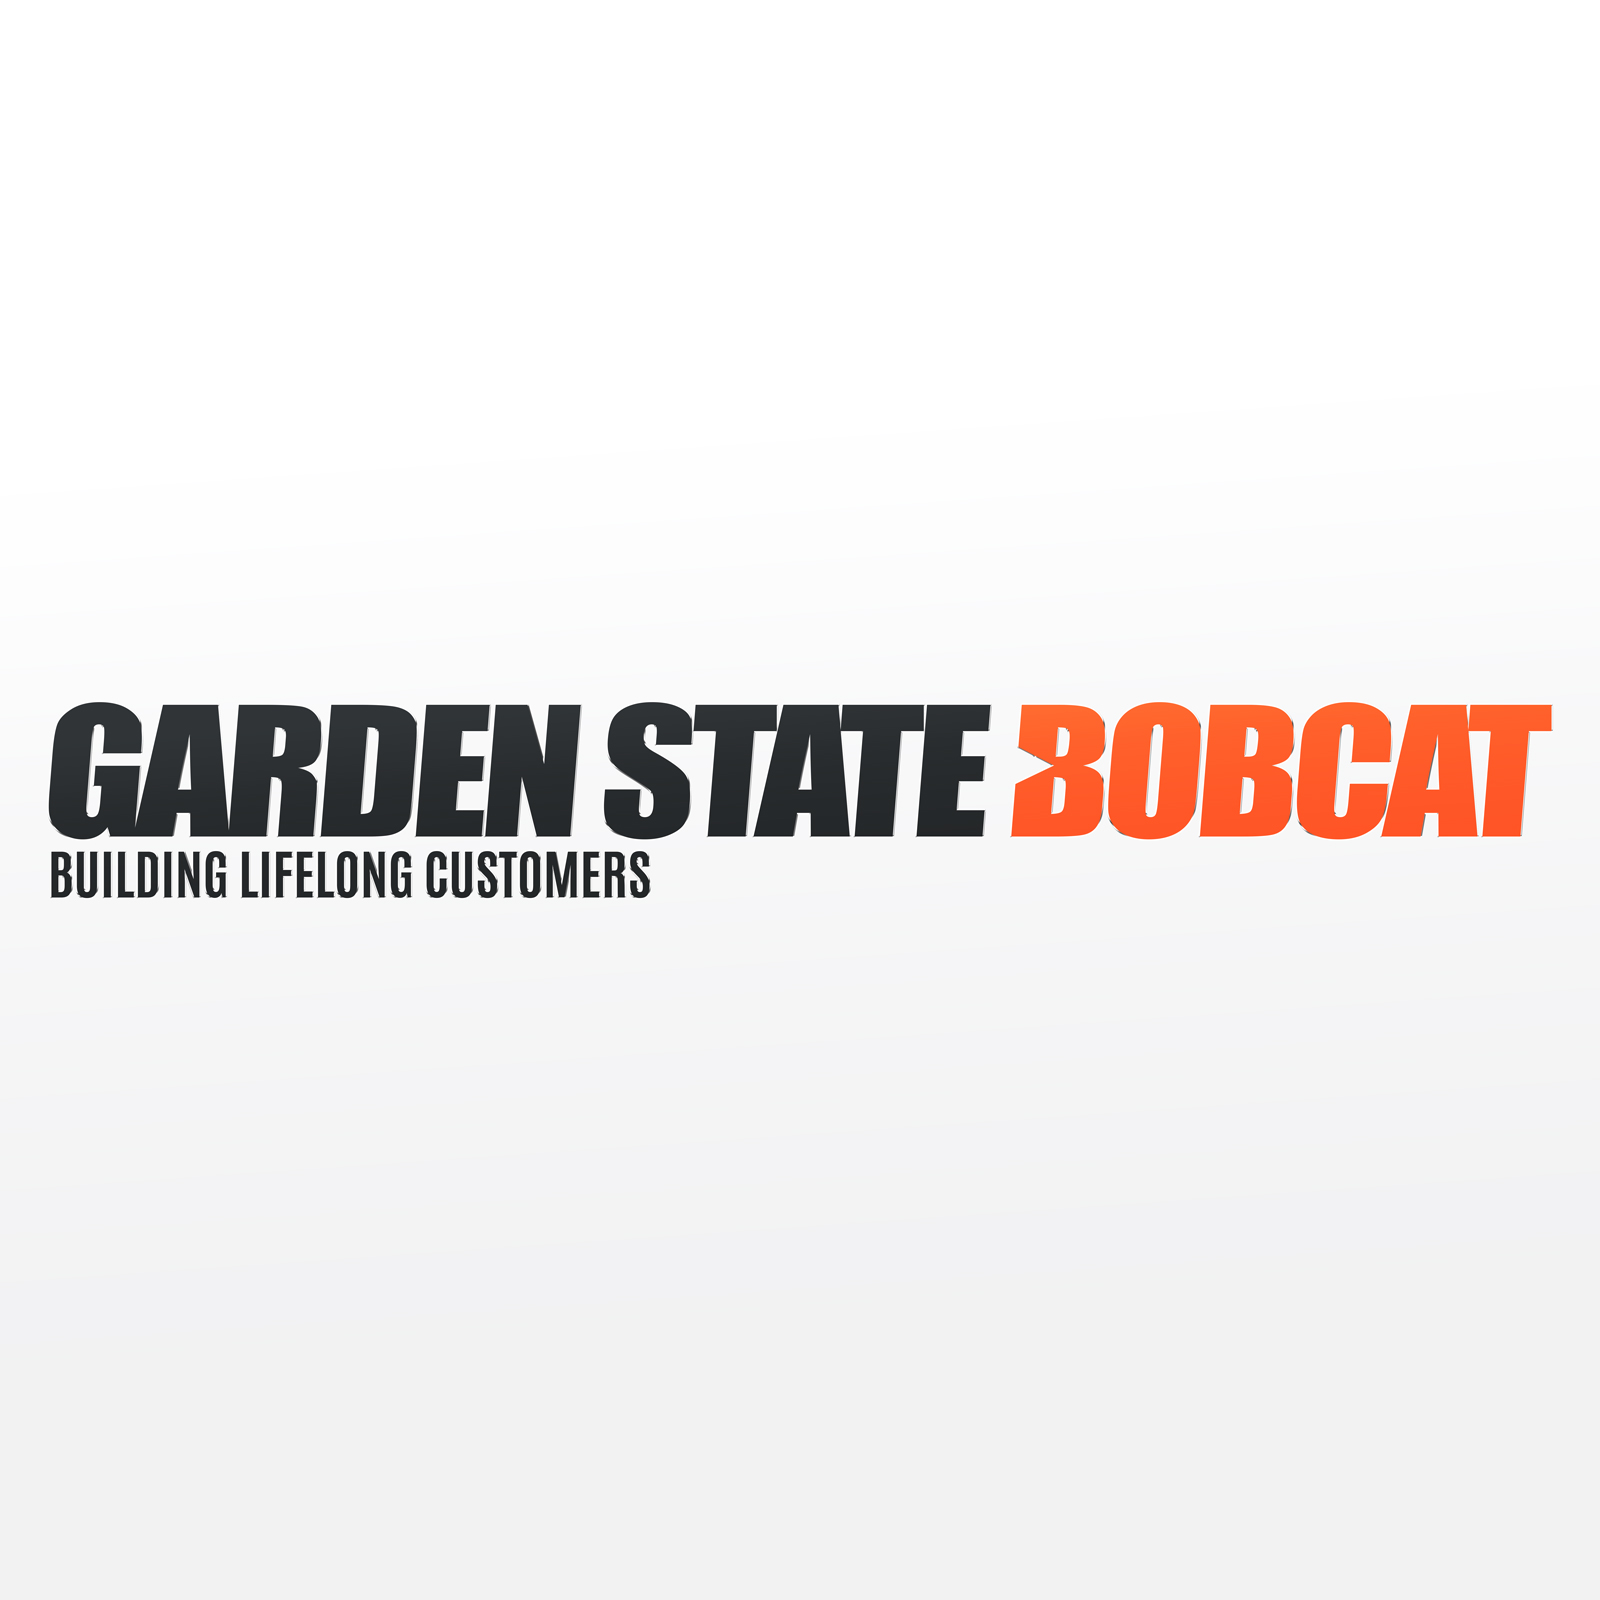 New & Used Bobcat Equipment for Rent Sale Bobcat Parts & Service